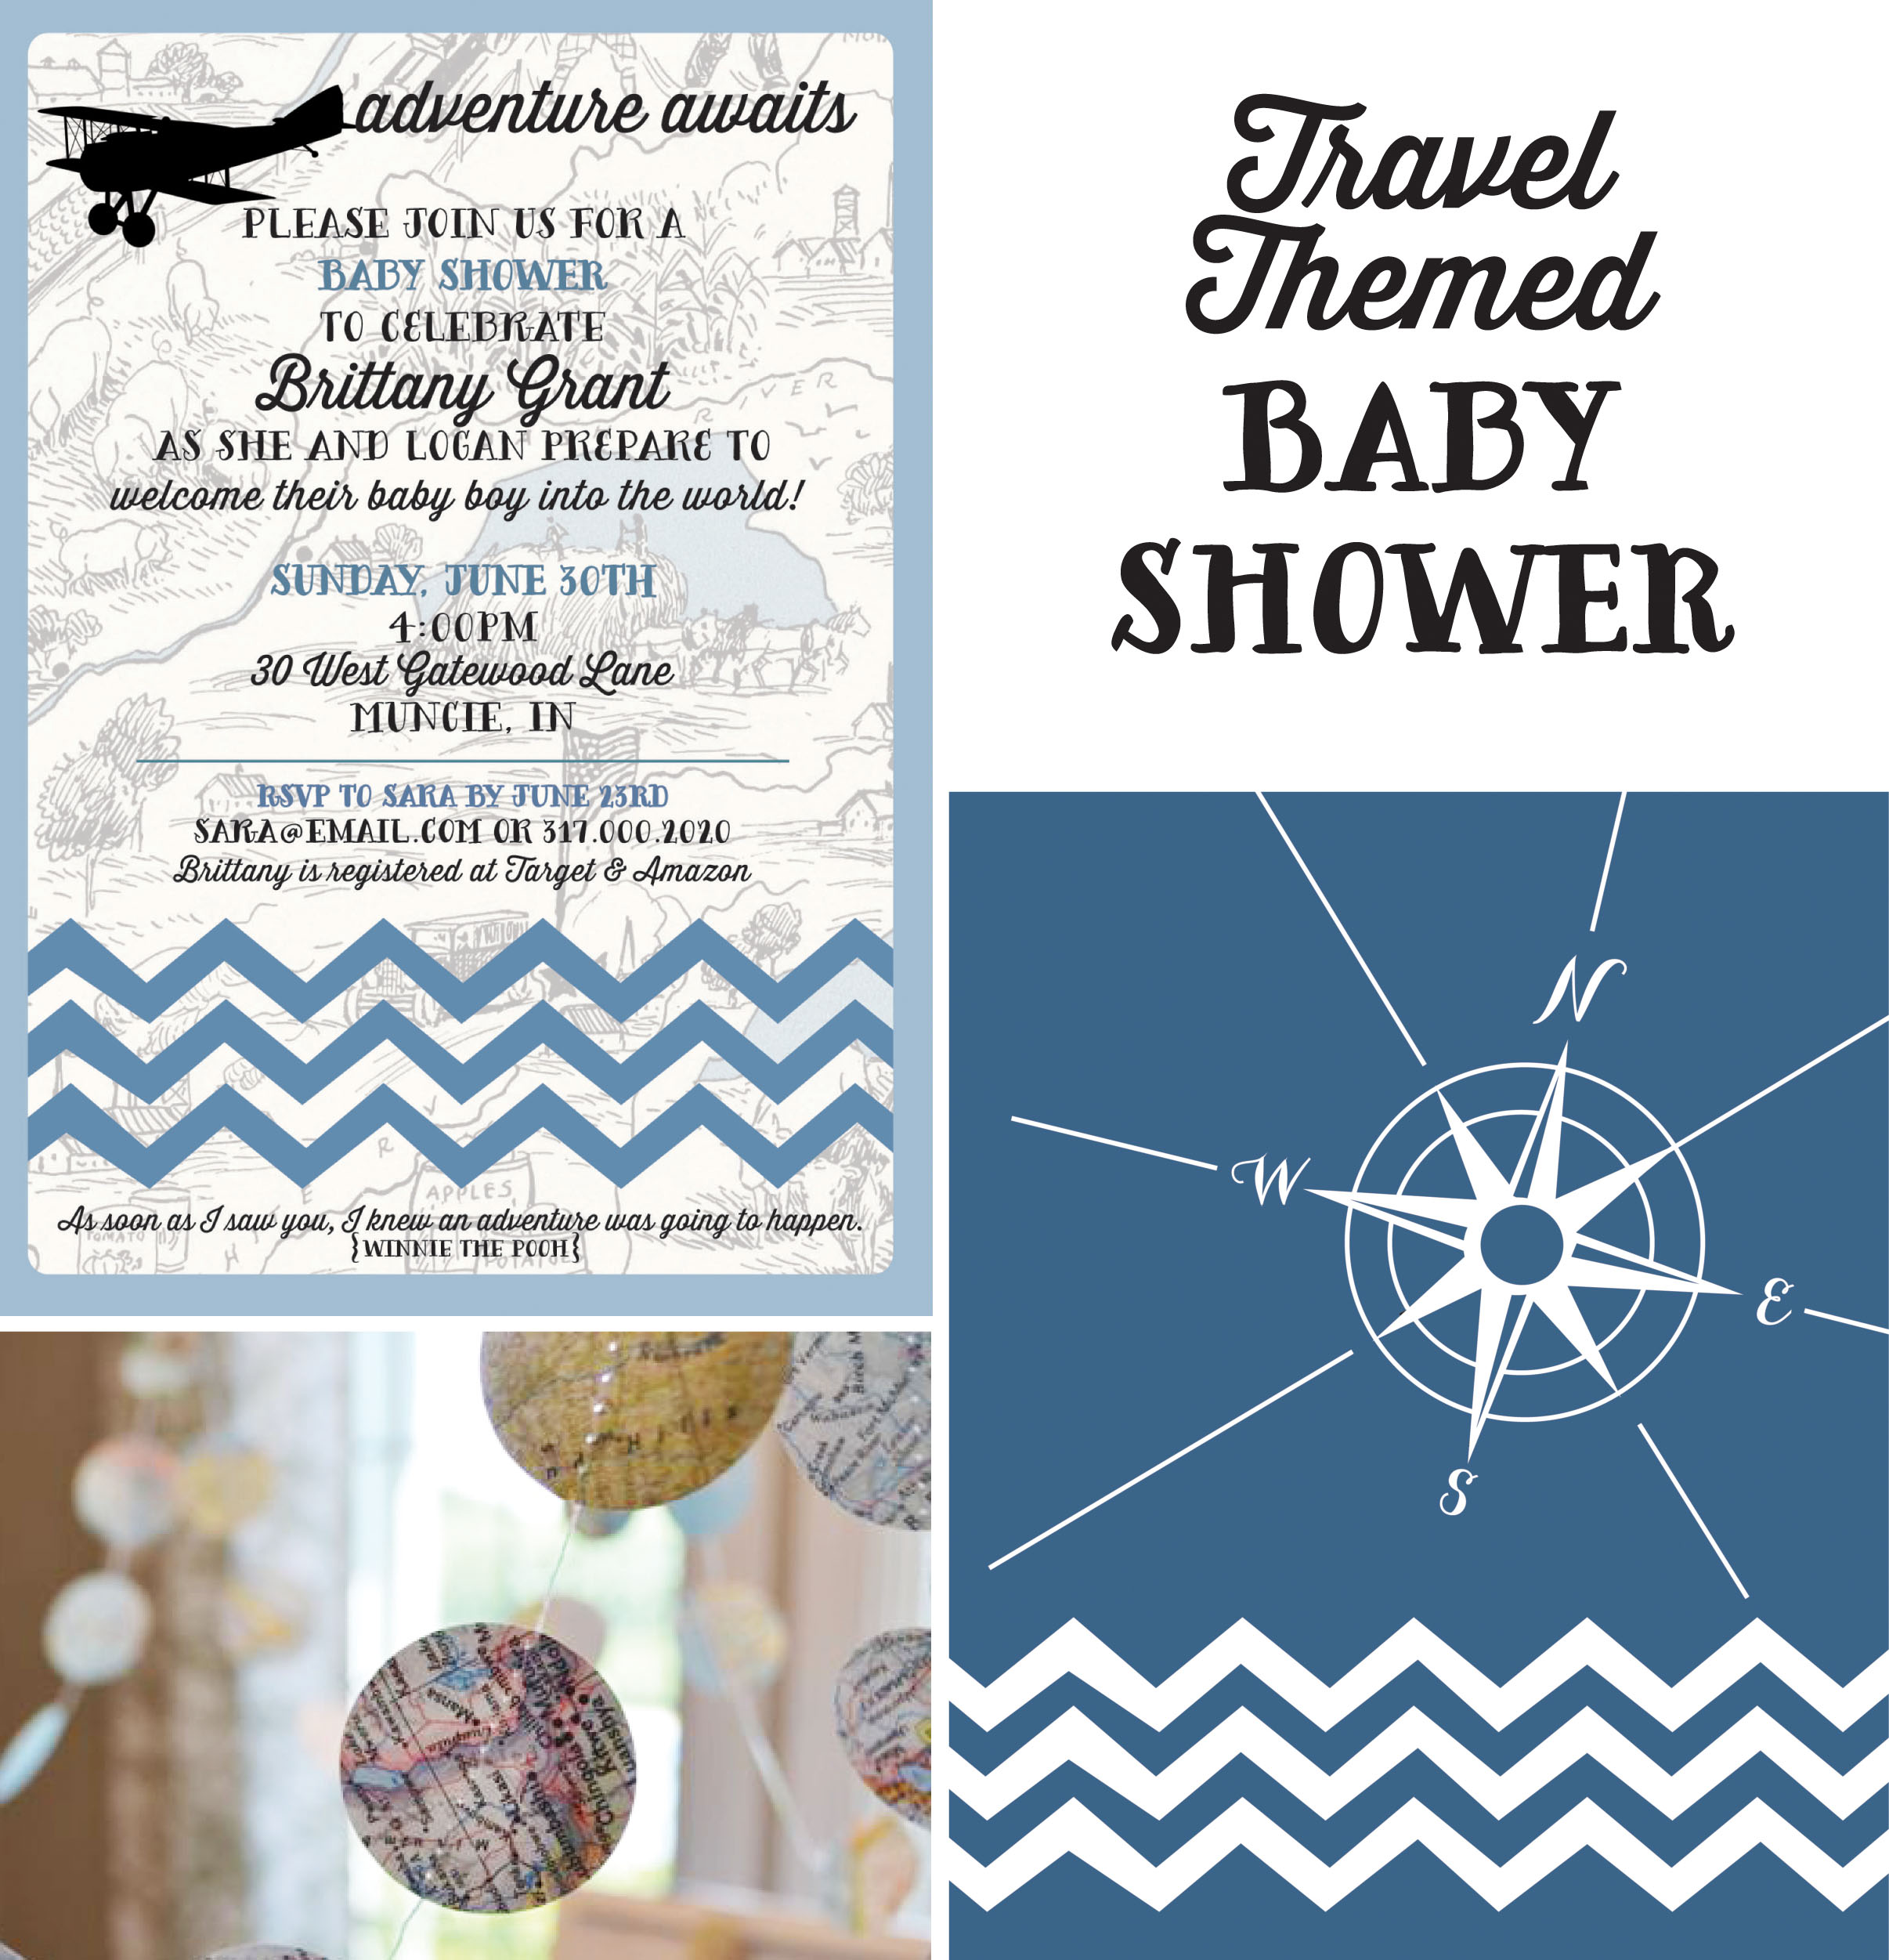 recently hosted a travel themed baby shower for a good friend